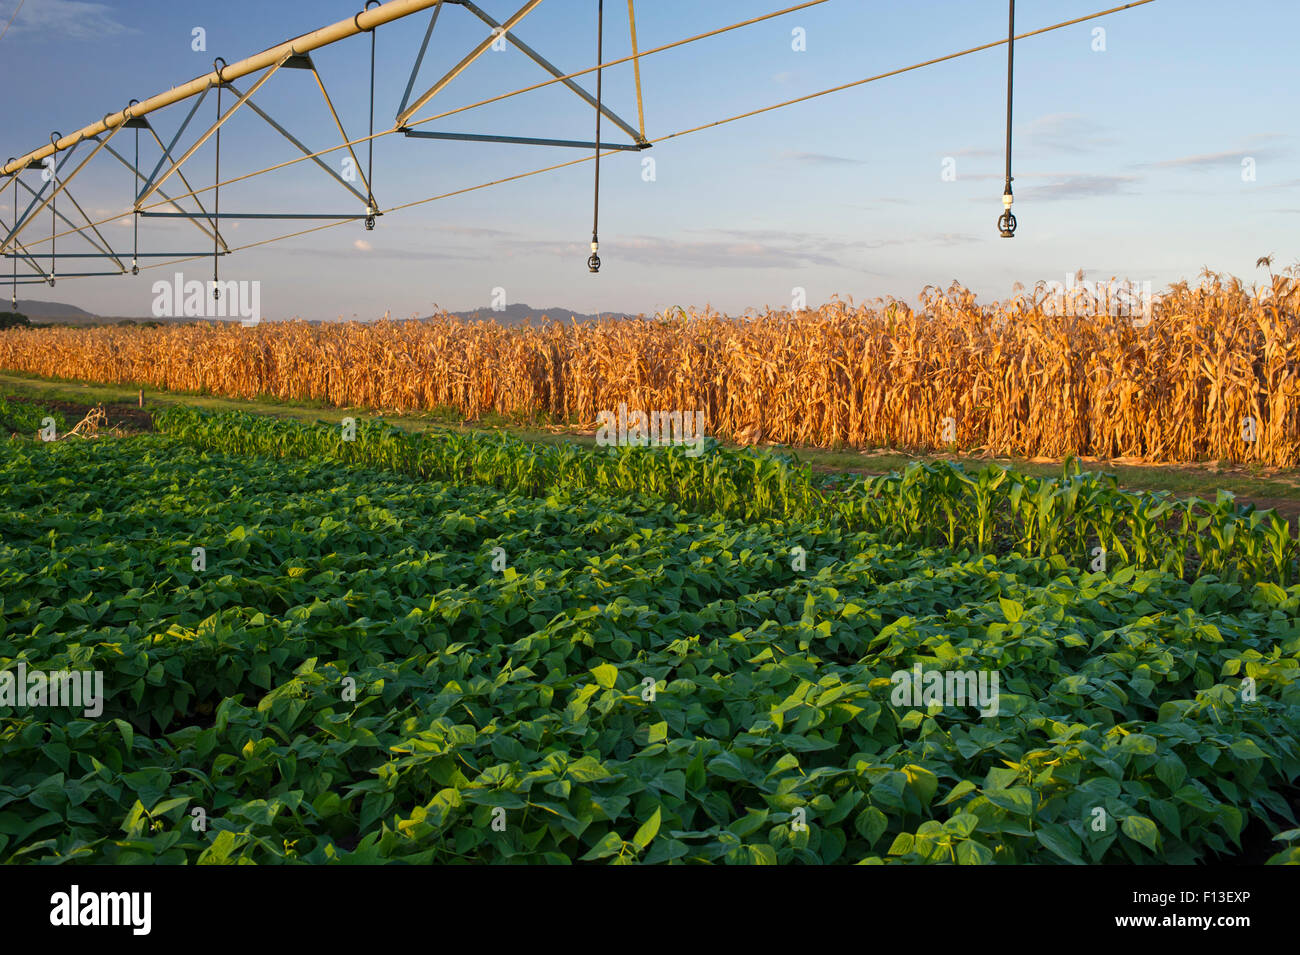 Field of Green beans (Phaseolus vulgaris) with pivot irrigation, field of dried maize behind. Commercial farm, Tanzania, - Stock Image